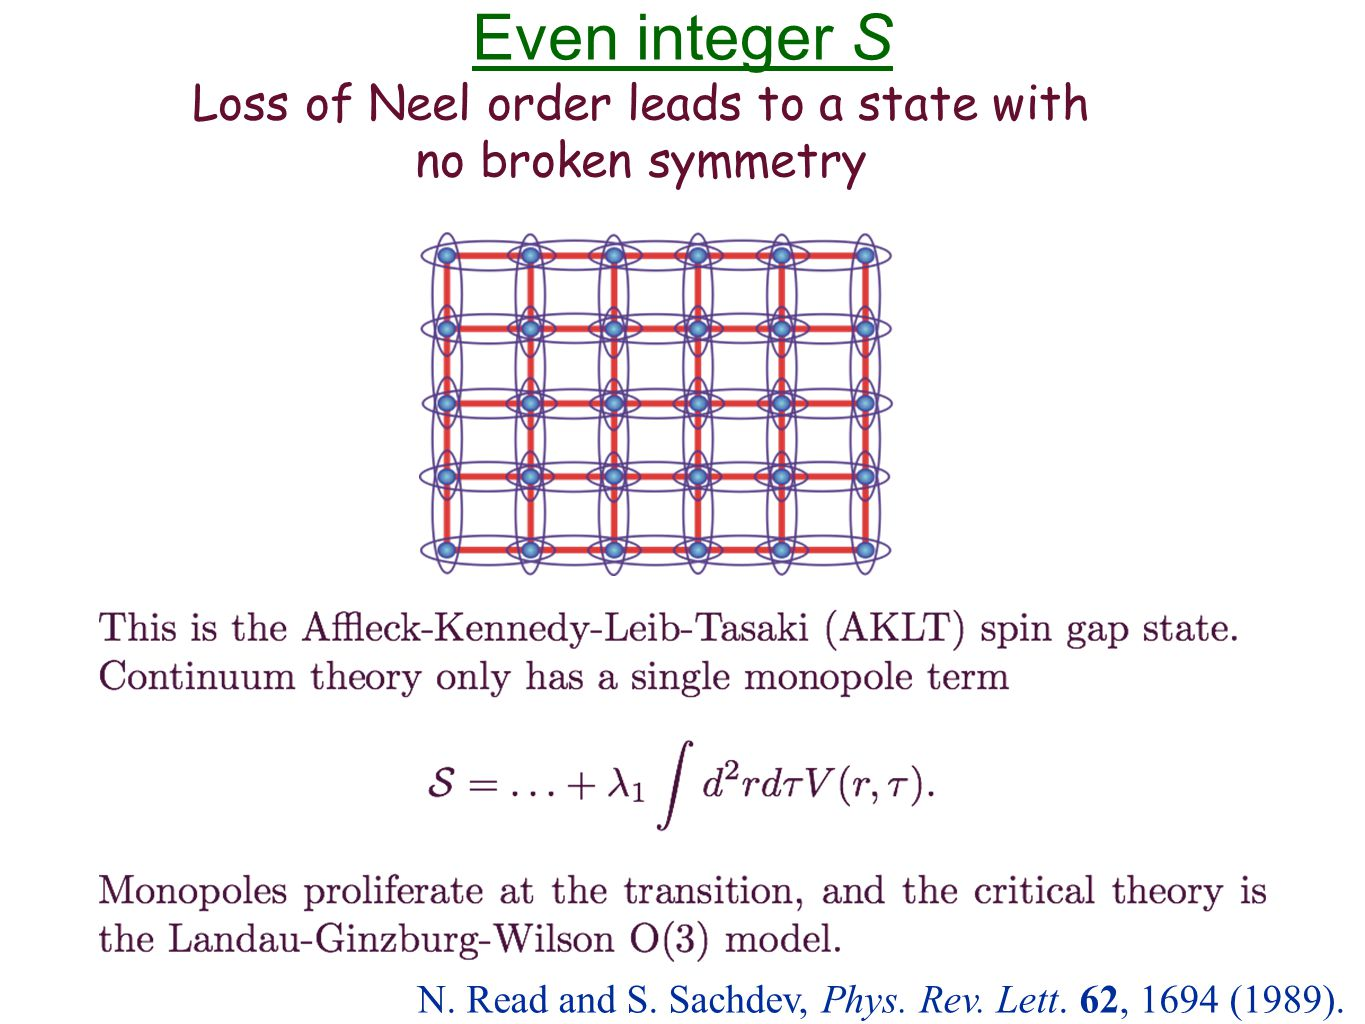 Even integer S Loss of Neel order leads to a state with no broken symmetry N.